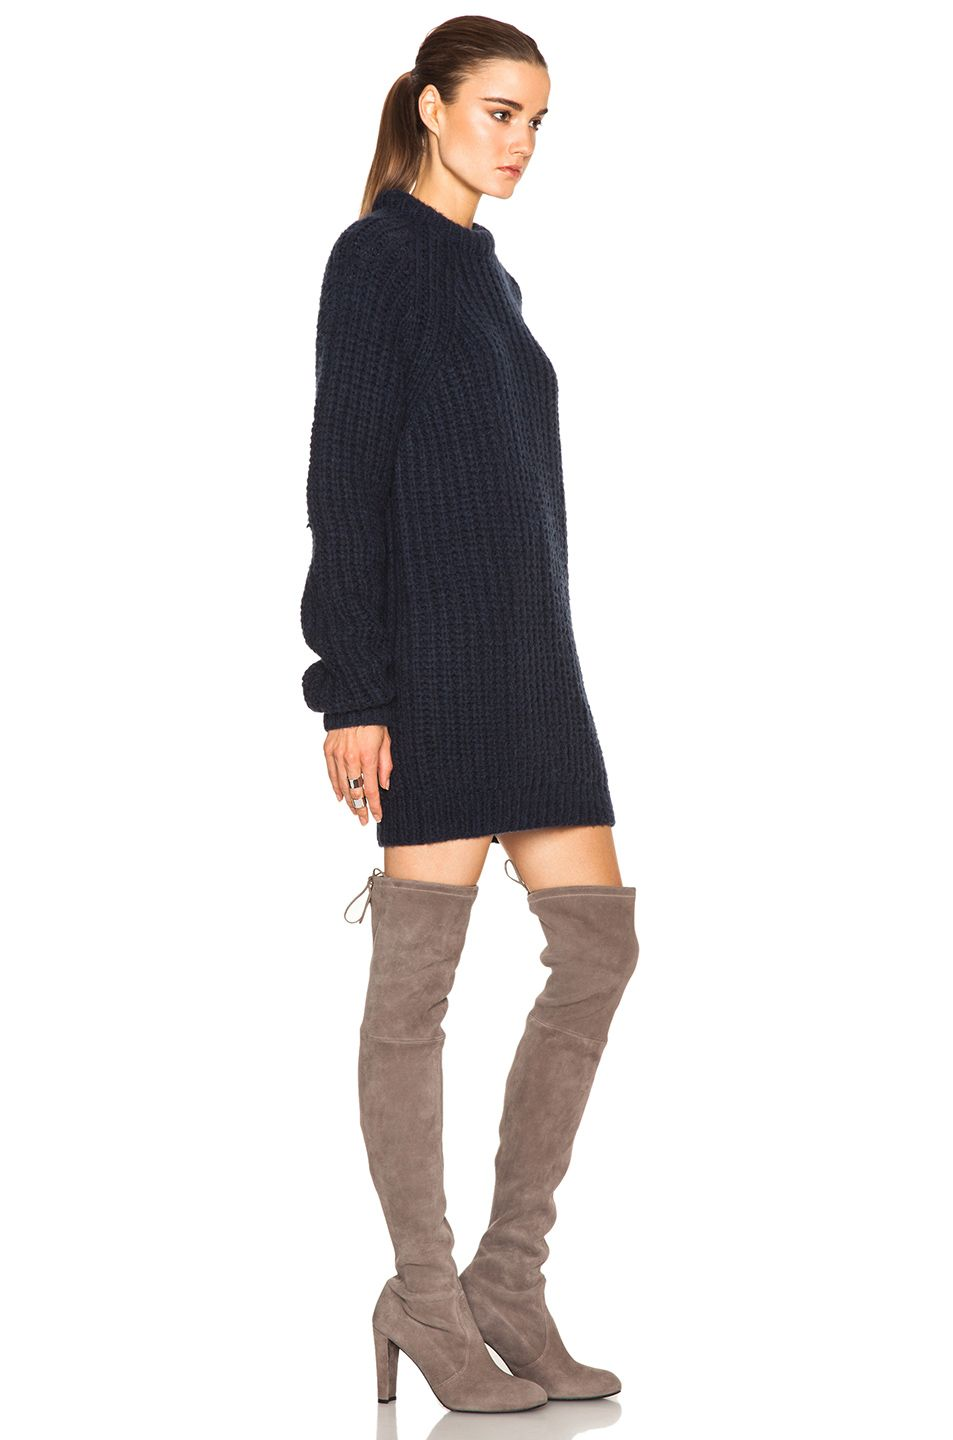 Amazing Cashmere Sweater Dress : The Best Cashmere Sweater Dress ...